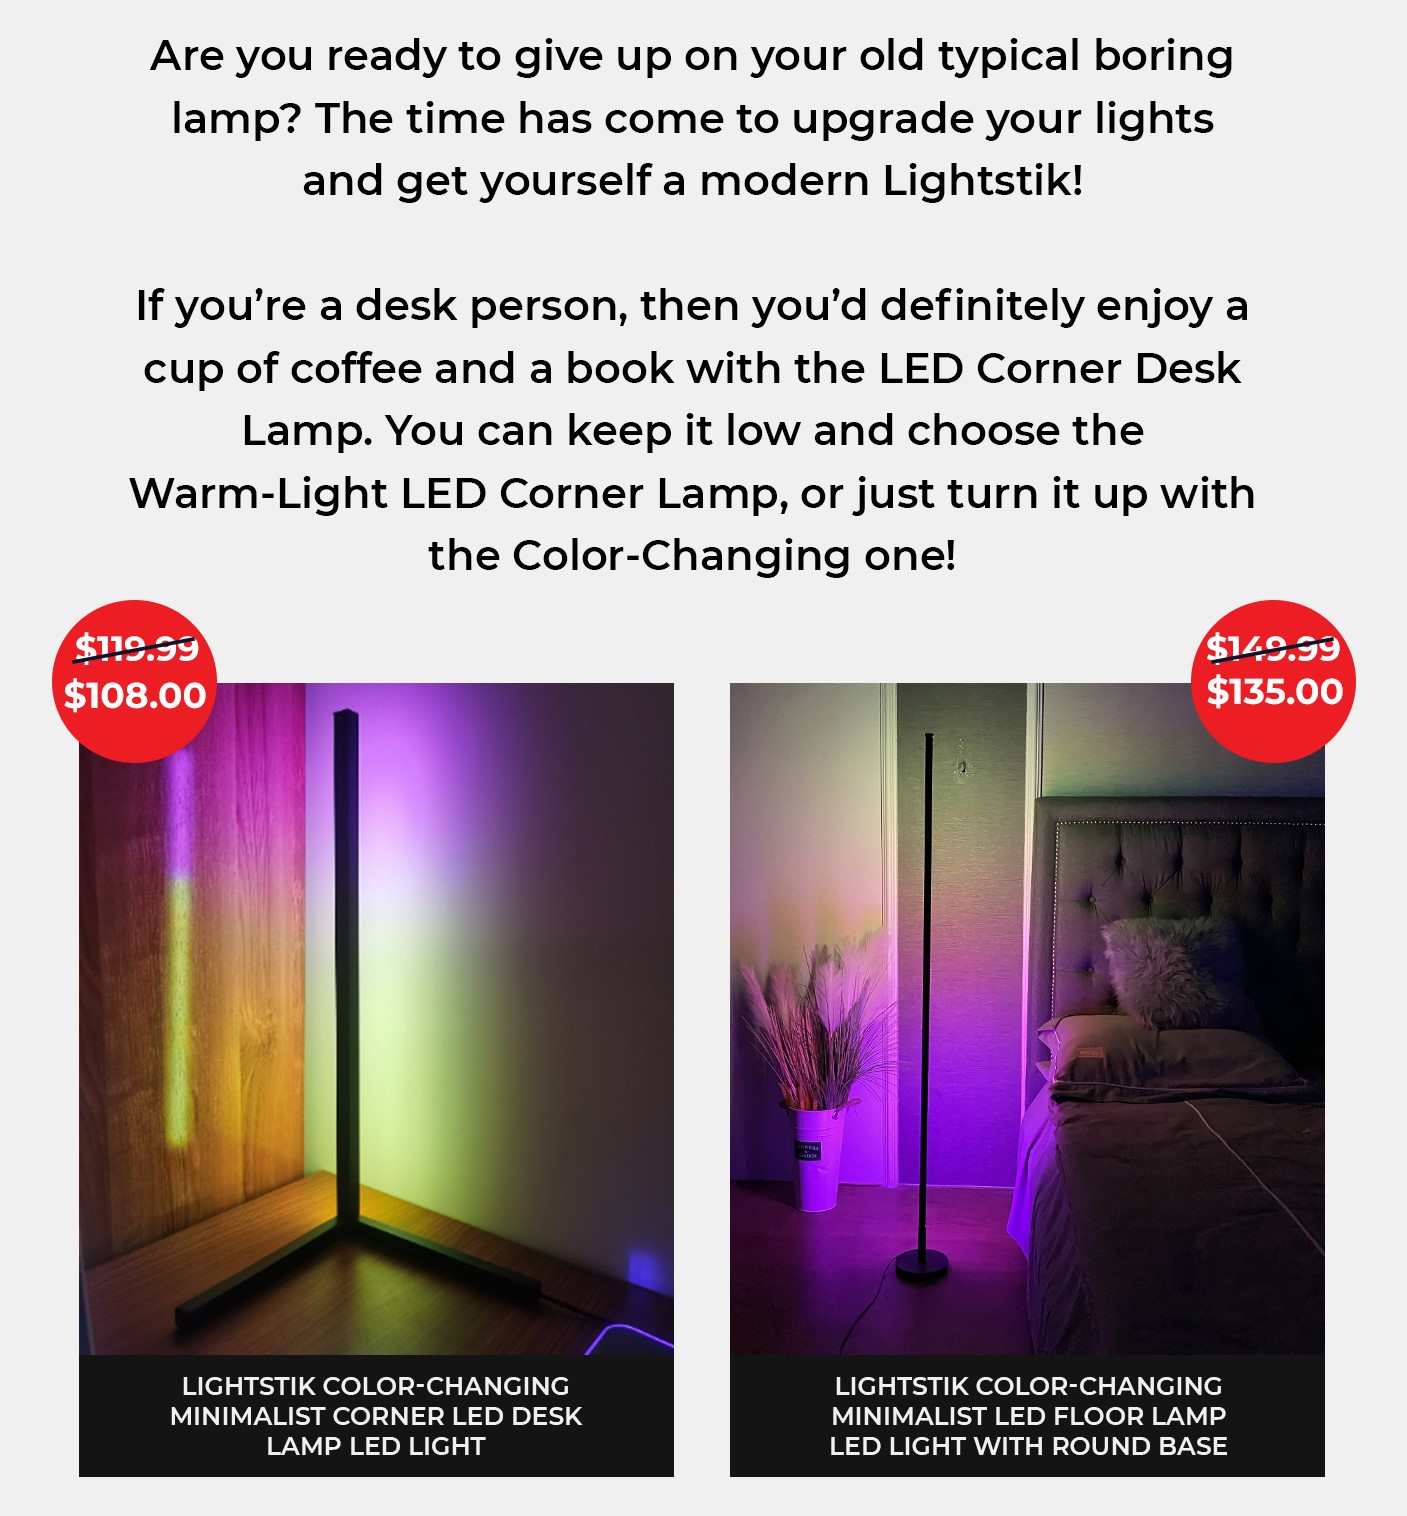 Upgrade your lights and get yourself a modern Lightstik